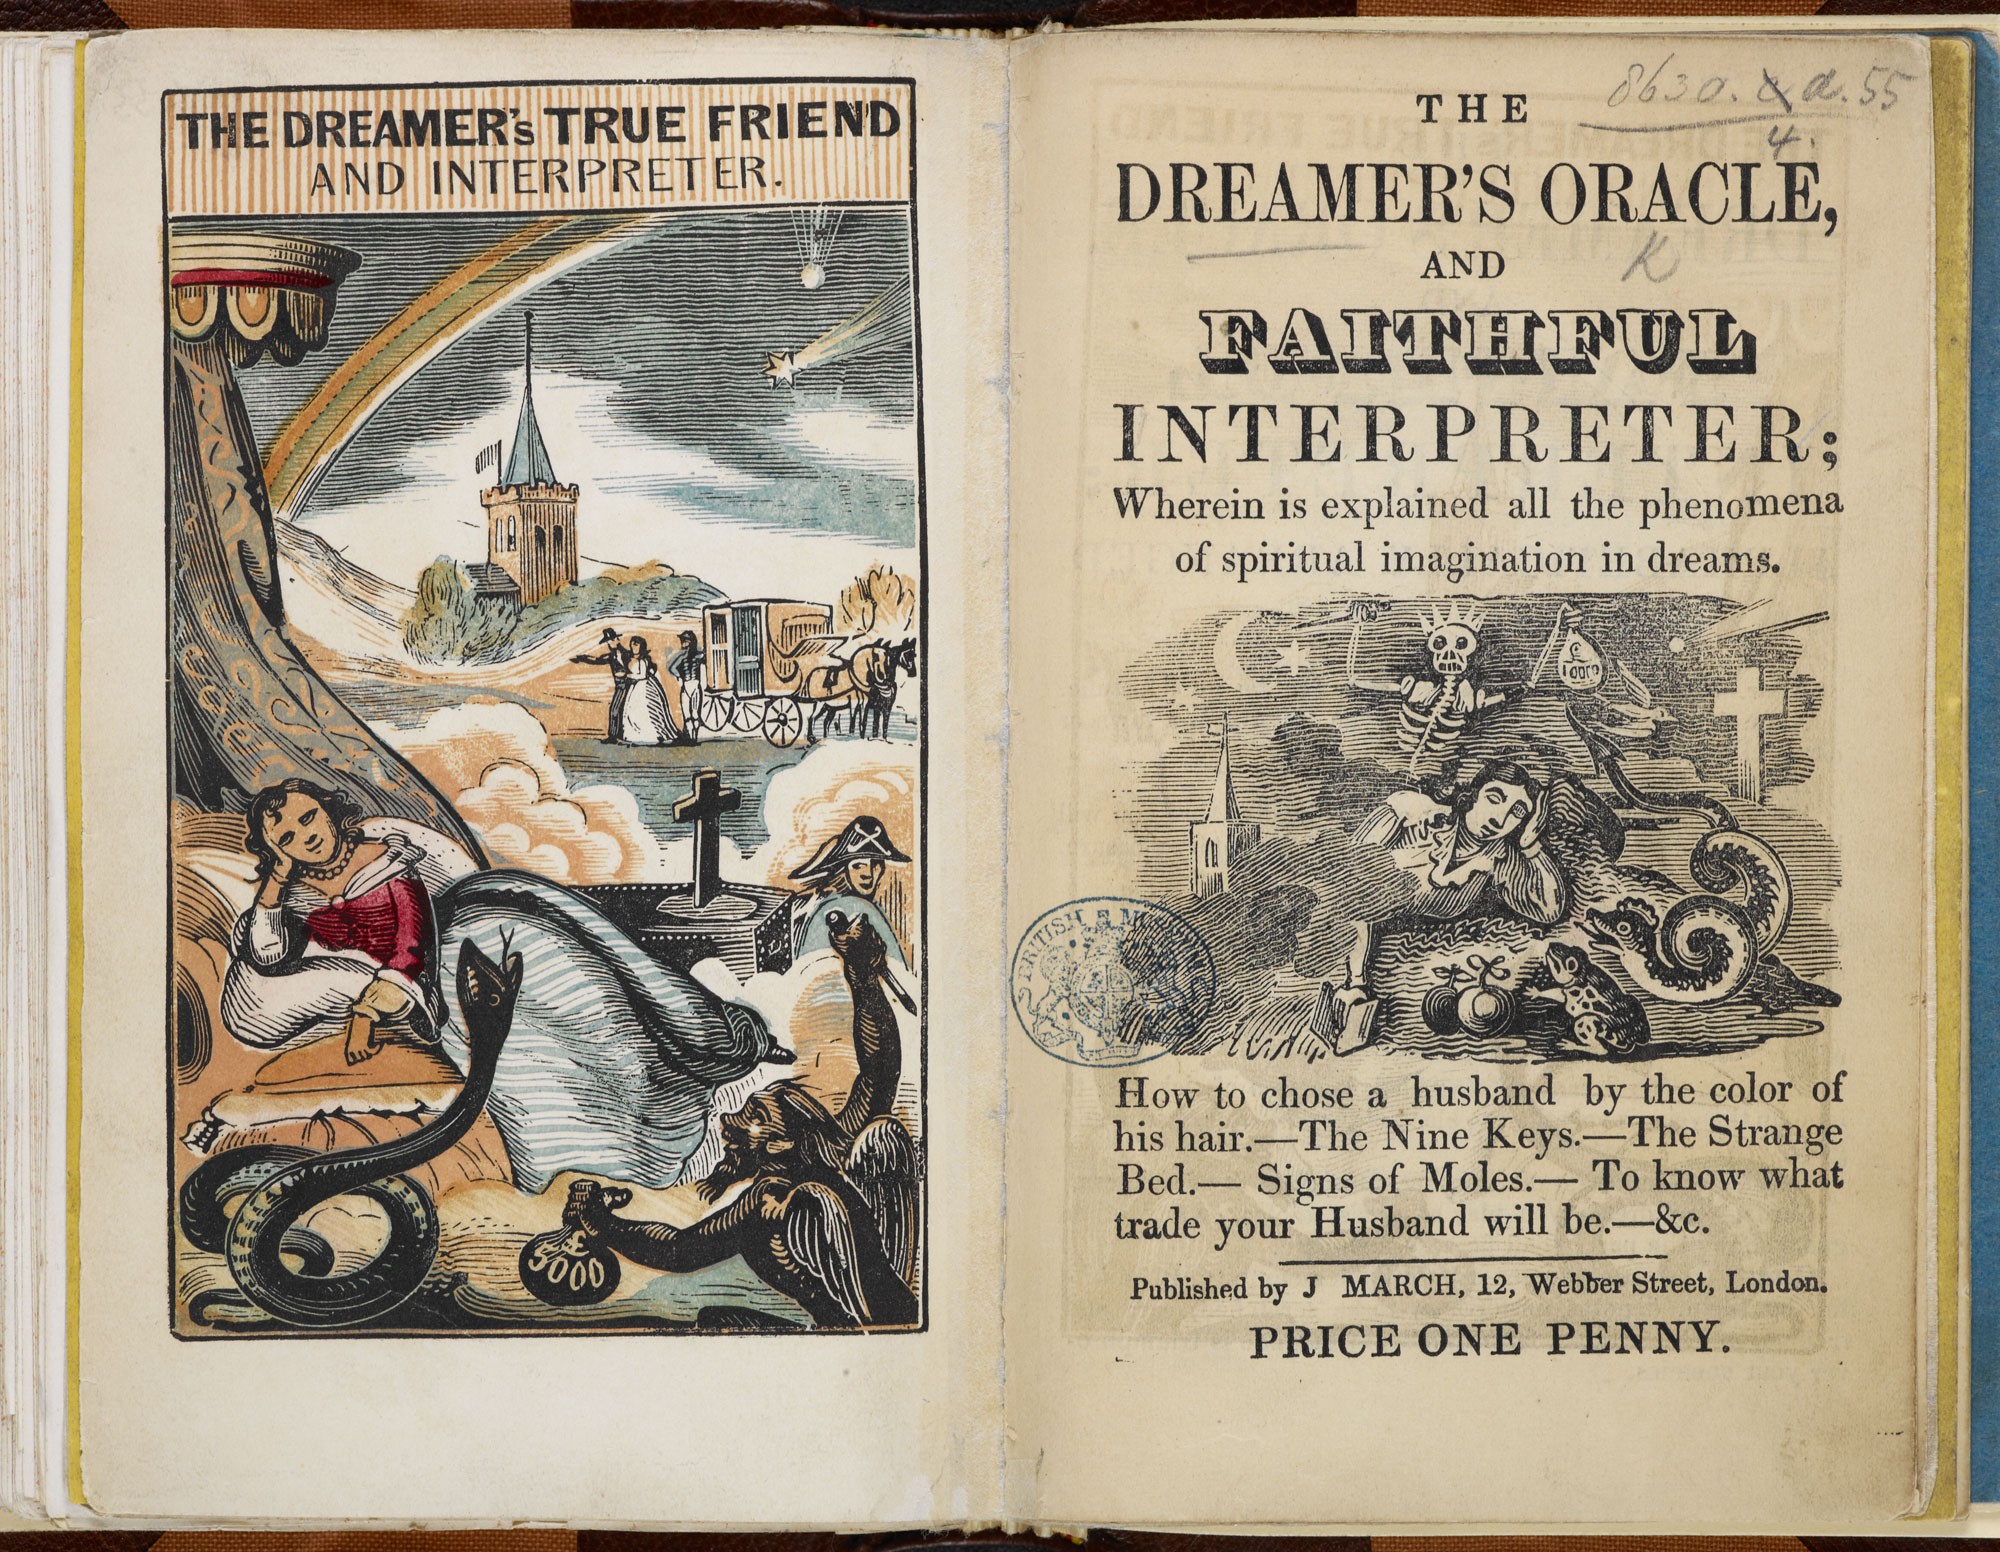 The Dreamer's Oracle  [page: frontispiece and title page]